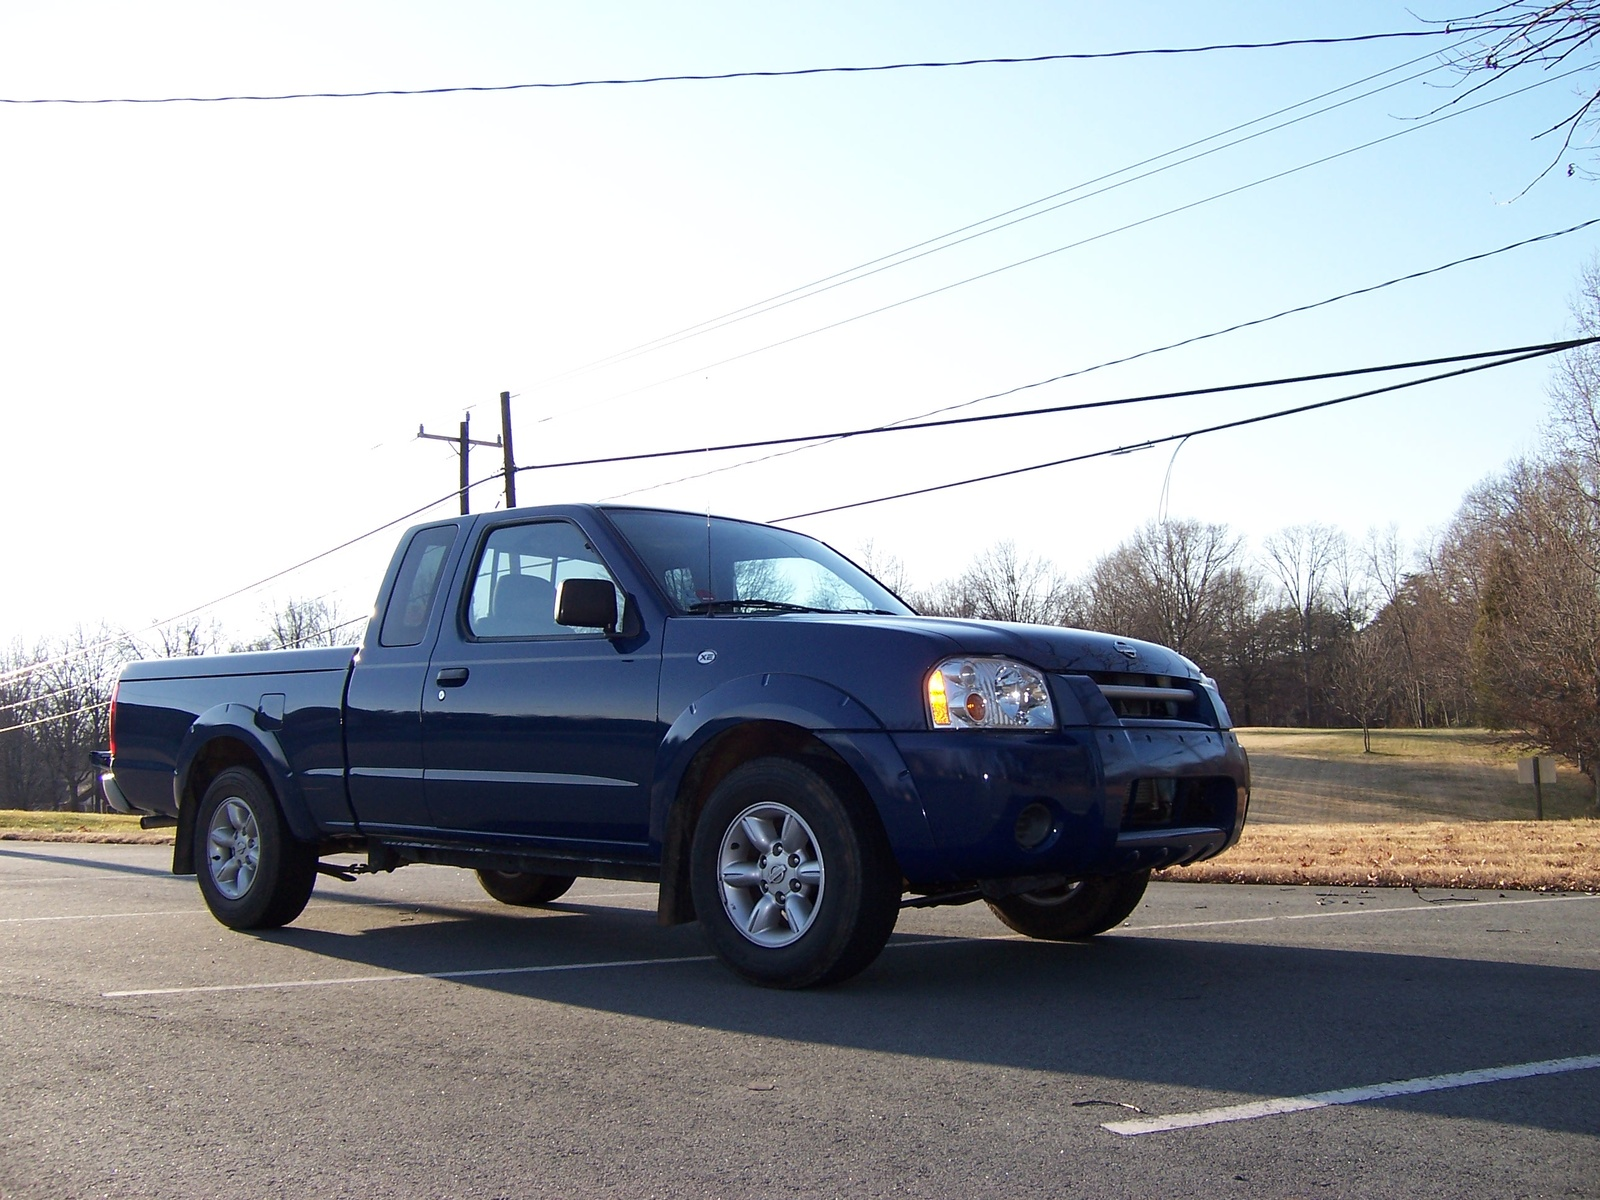 2001 Nissan Frontier 2 Dr XE Extended Cab SB picture, exterior